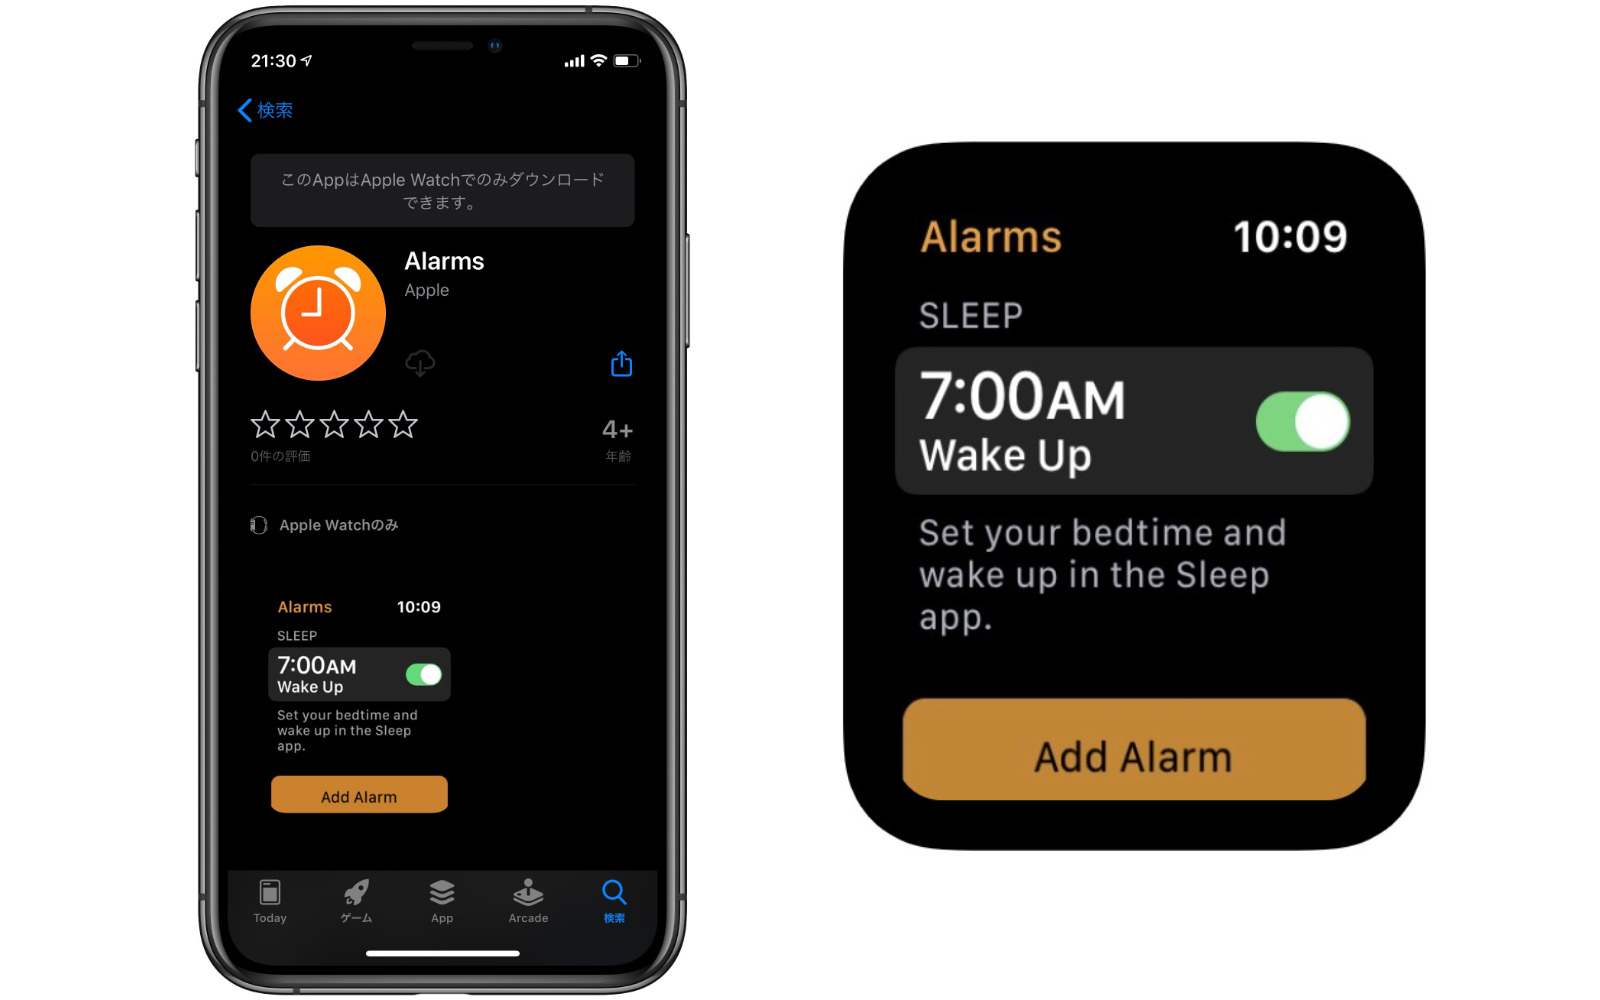 Apple Watch Sleep App